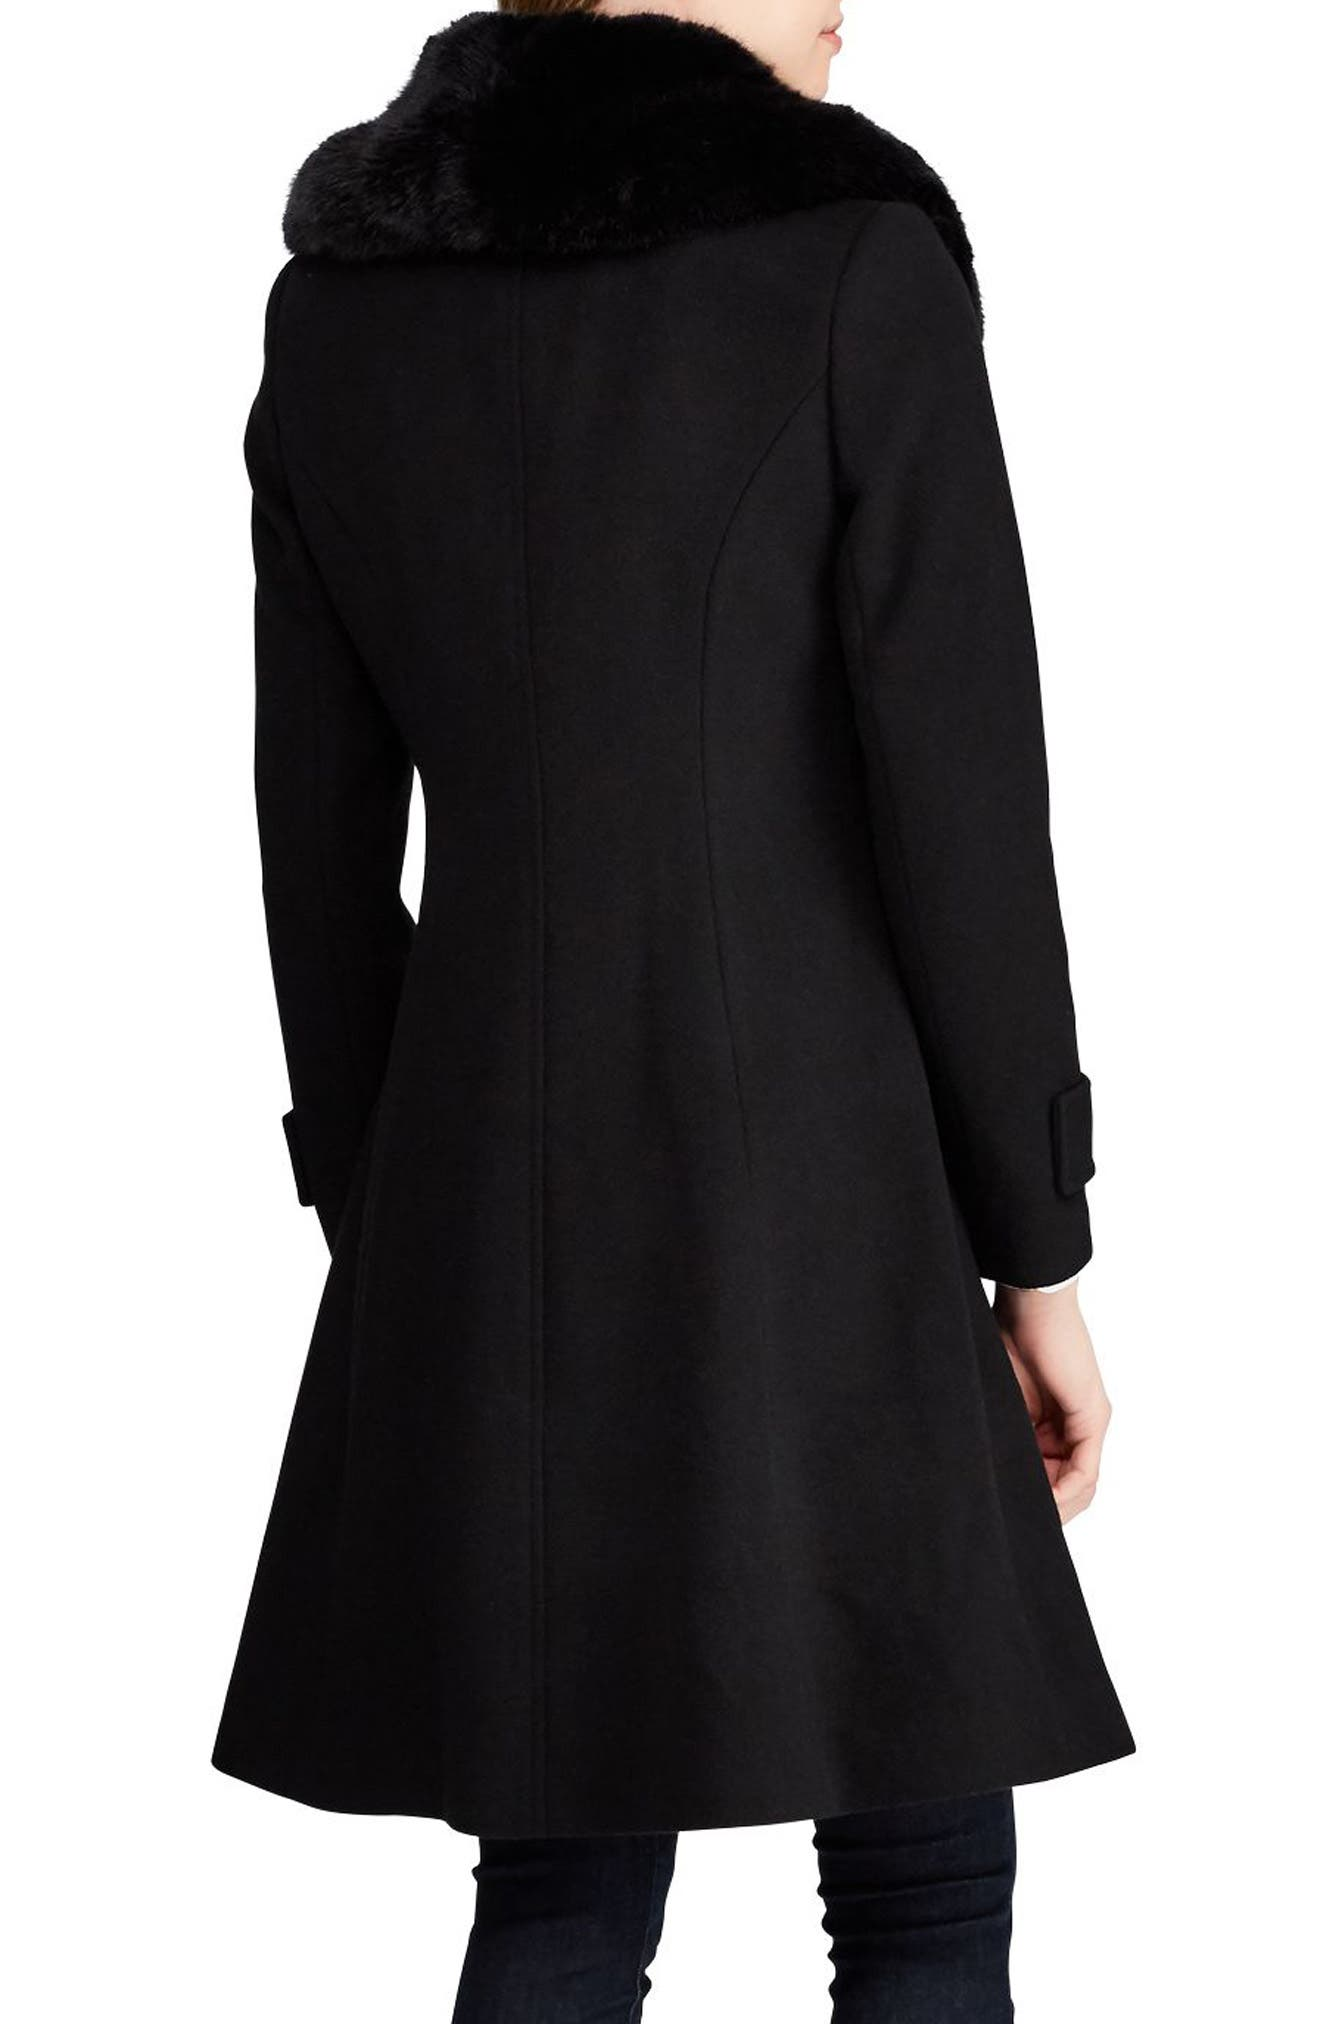 LAUREN RALPH LAUREN, Wool Blend Coat with Faux Fur Trim, Alternate thumbnail 2, color, BLACK